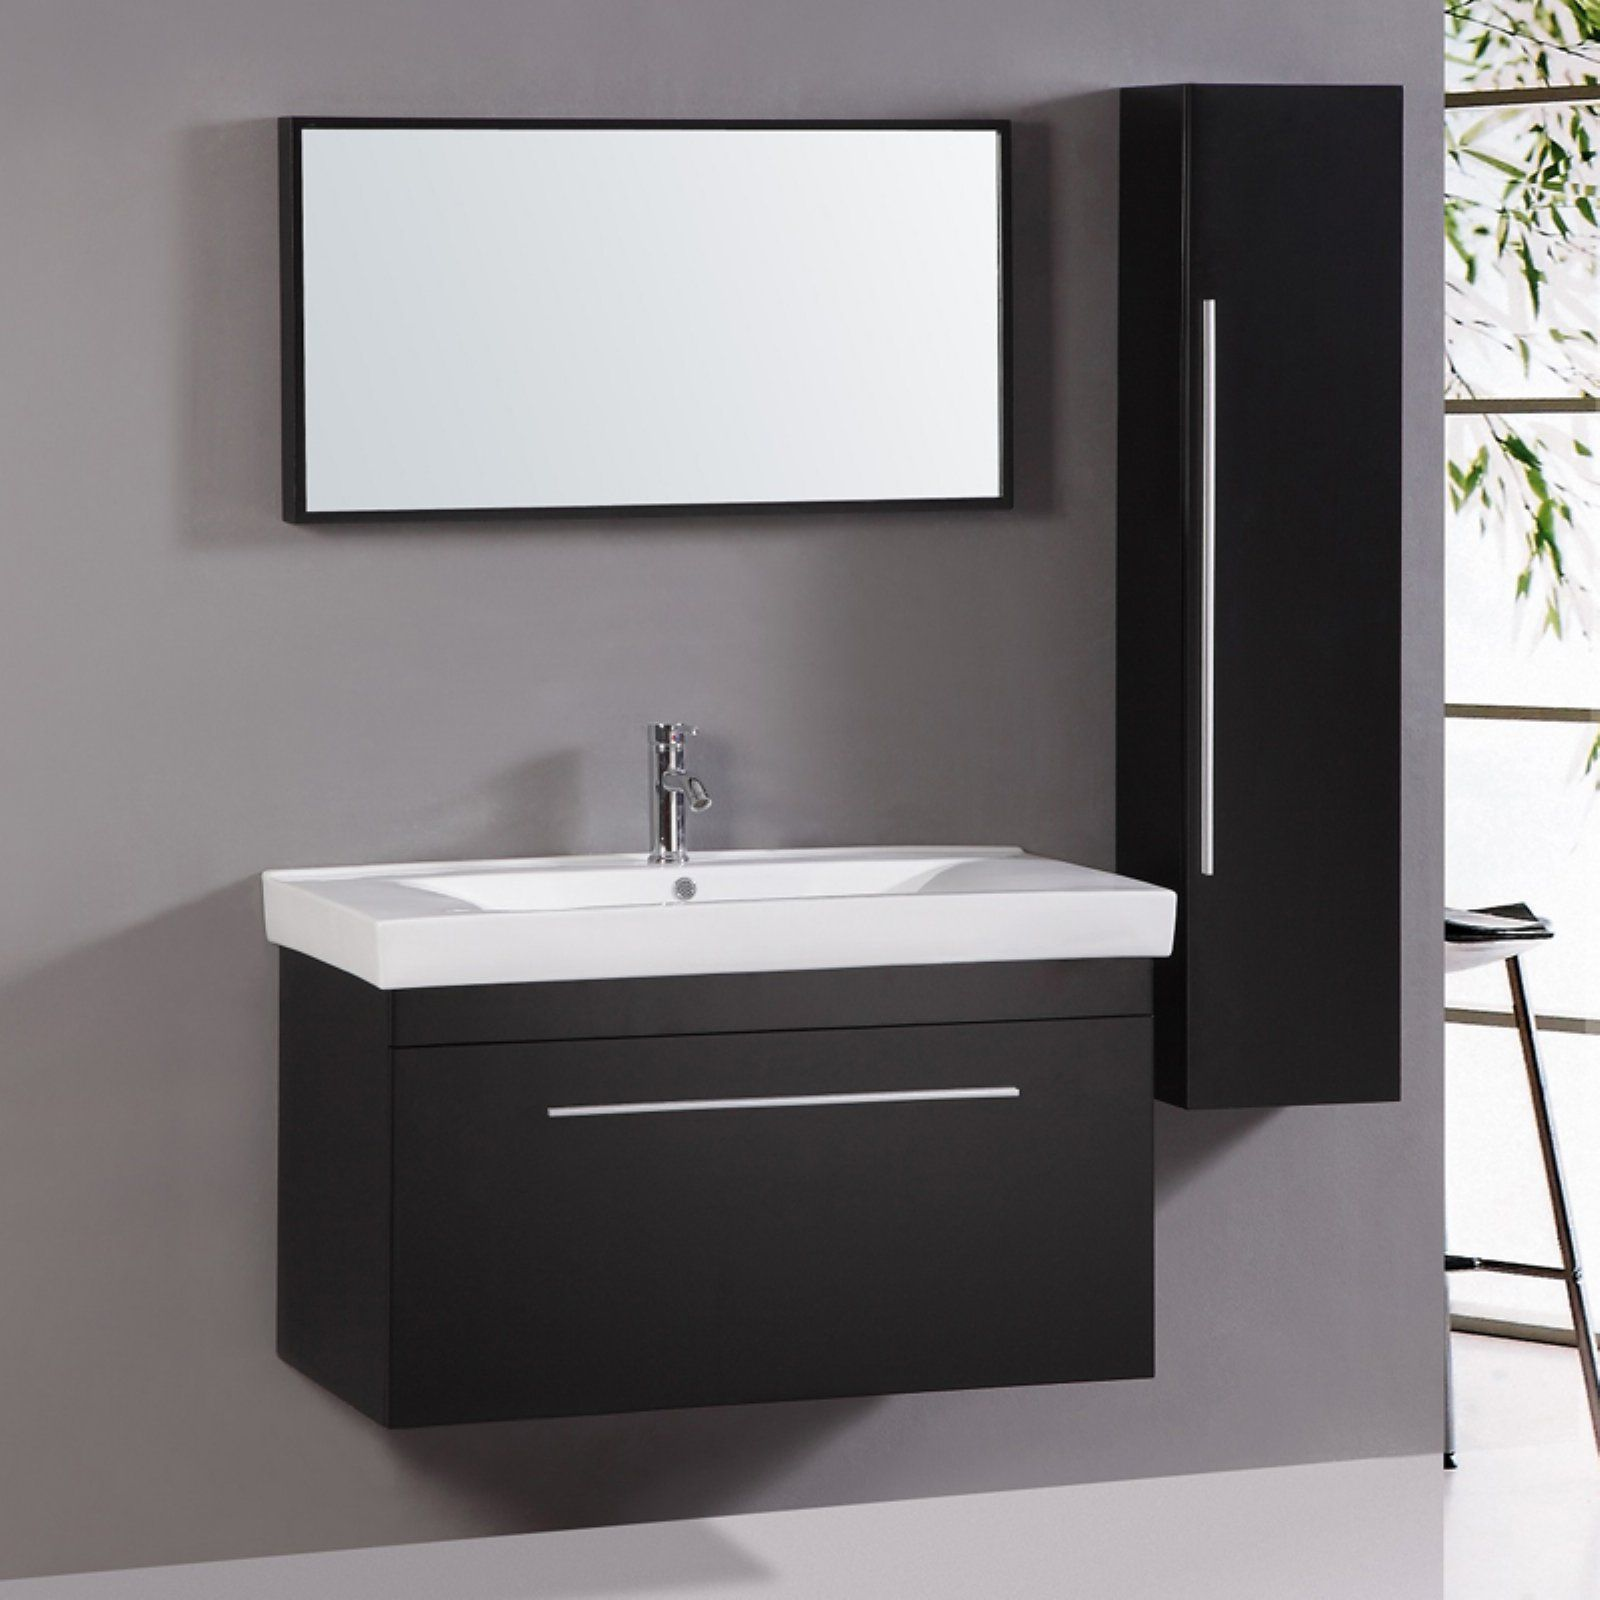 Legion Wt9002 Wall Mounted 40 In Single Vanity With Mirror And Side Cabinet Small Bathroom Vanities Unique Bathroom Vanity Bathroom Vanity [ jpg ]